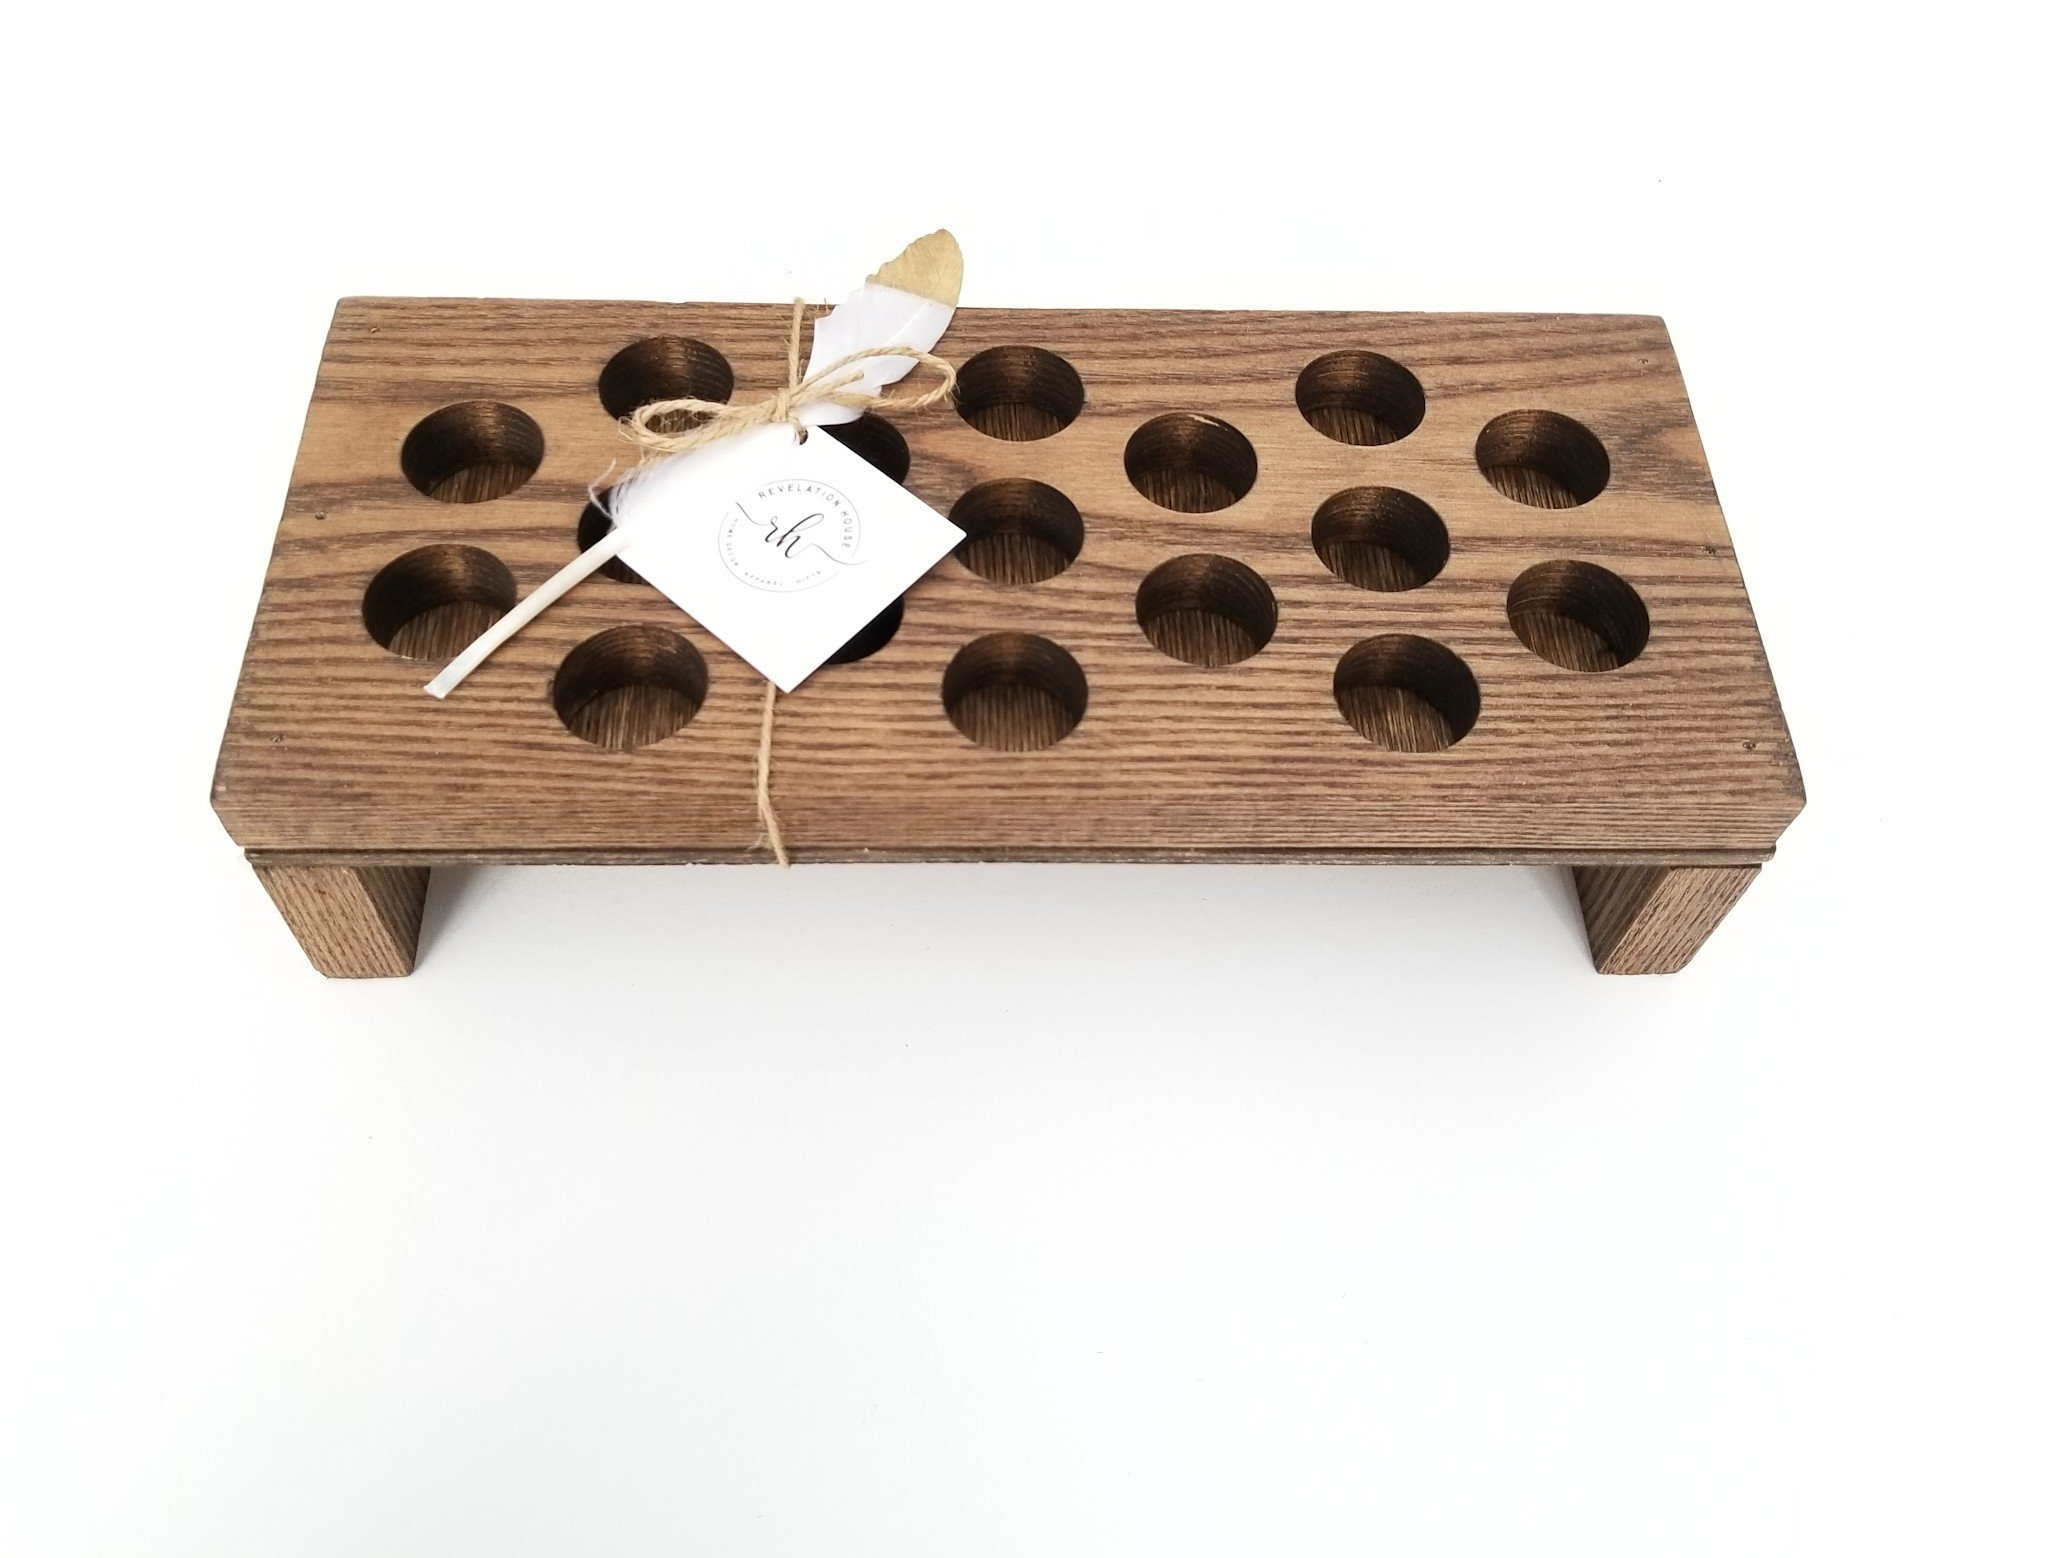 Essential Oil Display Tray - Spa Gift for Her - Essential Oil Wood Rack